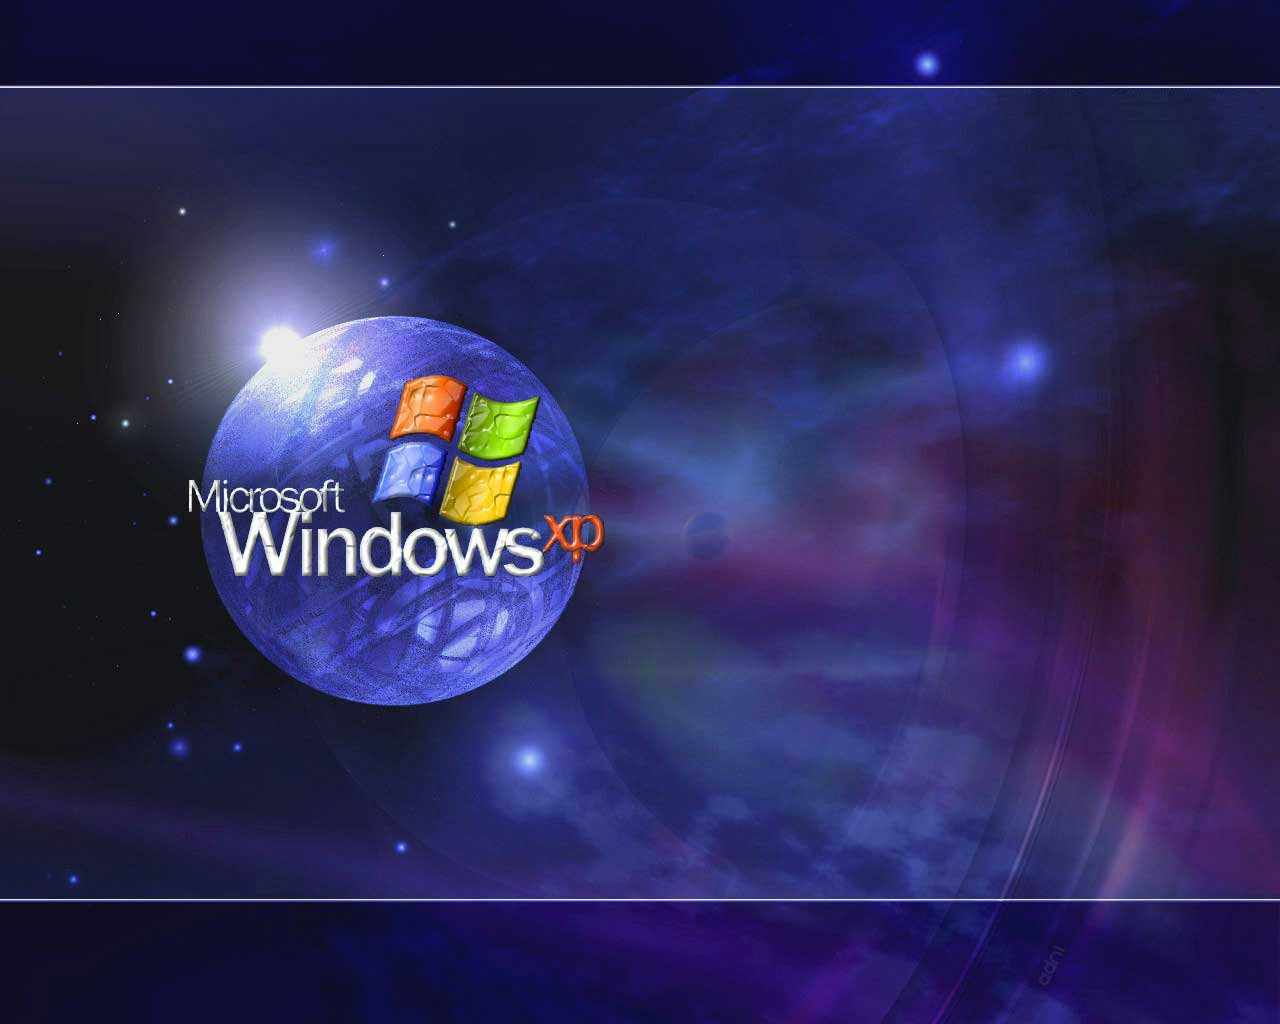 Windows XP Themes